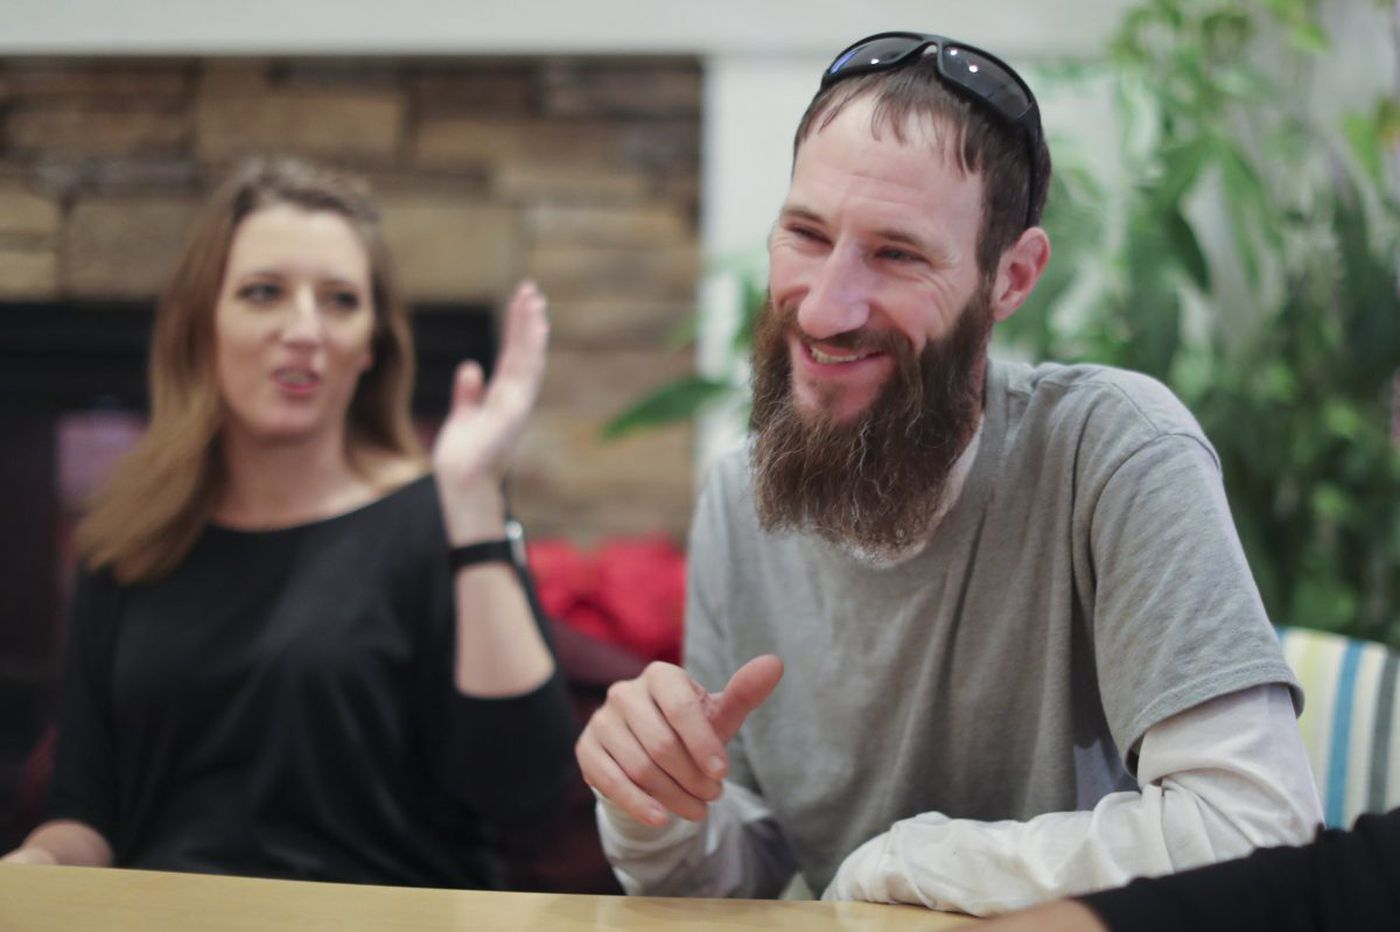 How a $400K viral windfall transformed life of homeless Good Samaritan Johnny Bobbitt